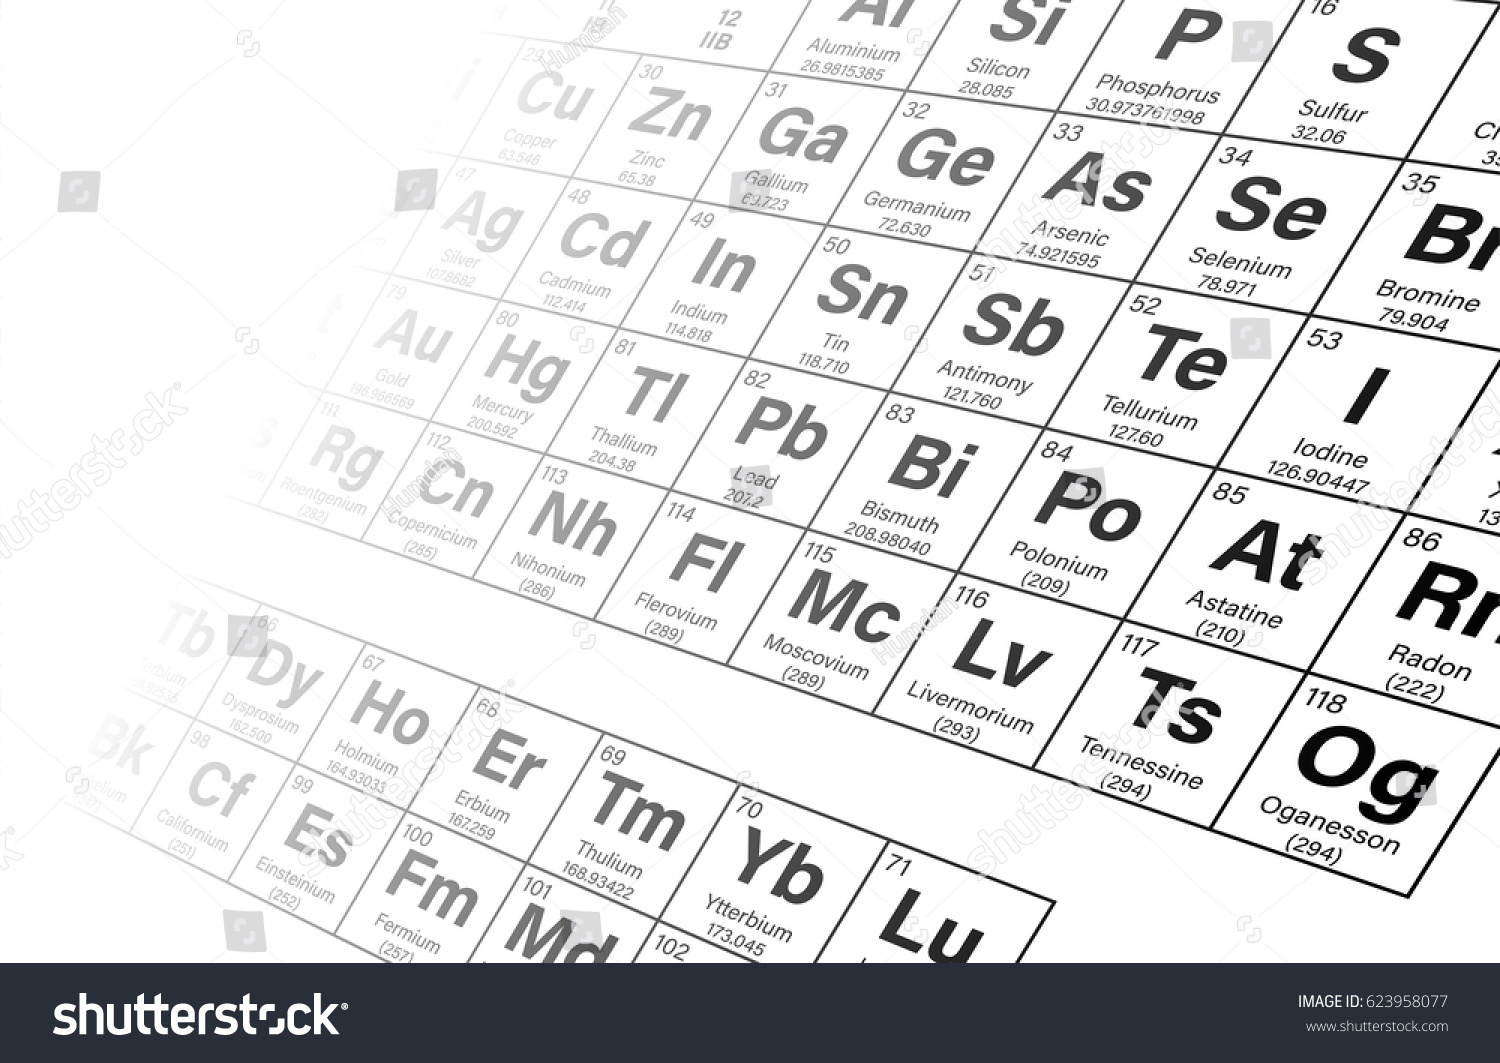 Periodic table element 35 images periodic table images periodic table 35 image collections periodic table images periodic table elements perspective background vector stock vector gamestrikefo Images